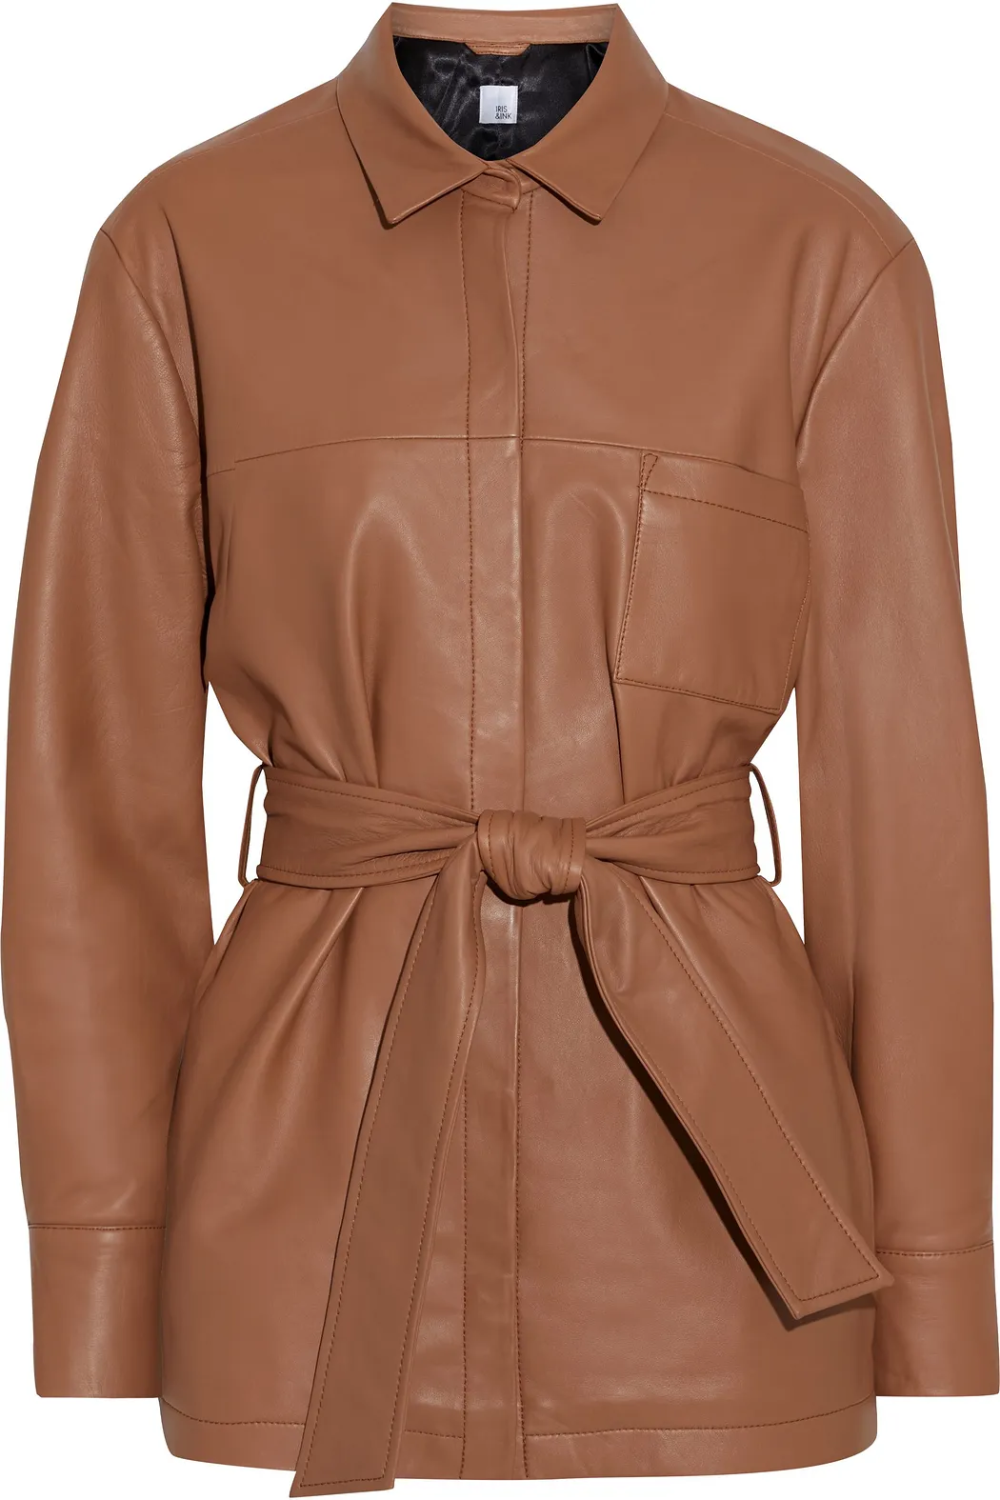 Light Brown Fatima Belted Leather Jacket Sale Up To 70 Off The Outnet Iris Ink Leather Jackets For Sale Leather Jacket Ink Clothes [ 1500 x 1000 Pixel ]